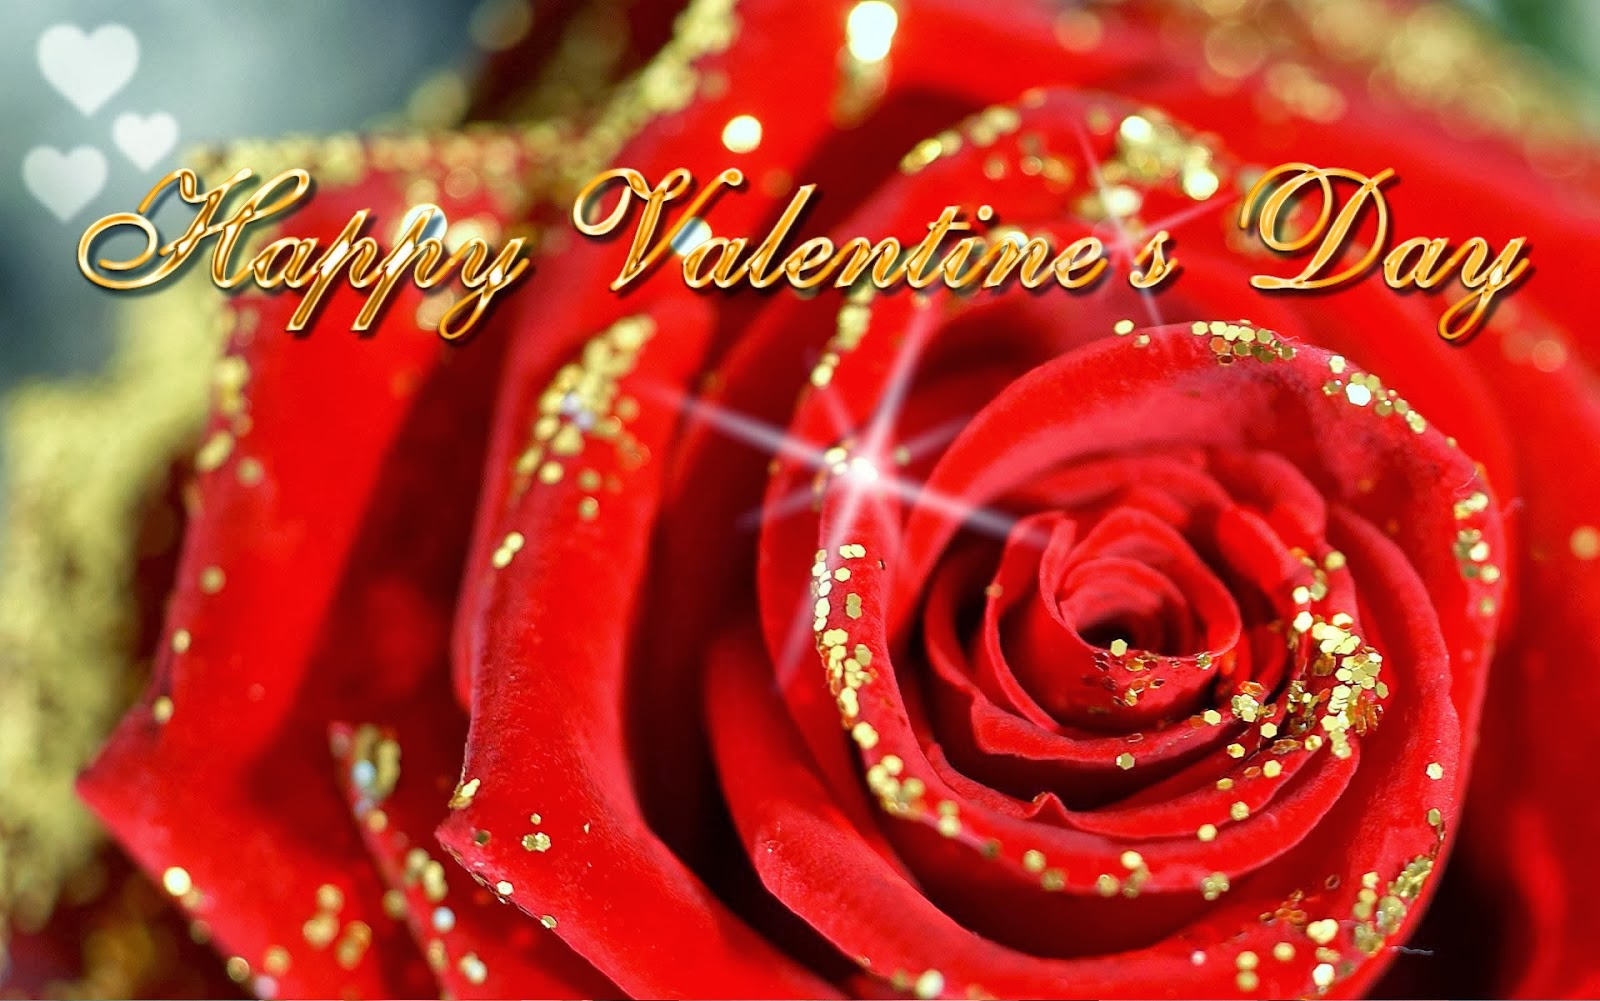 valentines day live wallpaper show how romantic you are by getting this colorful valentines day live wallpaper with cute heart pictures - Live Valentine Wallpaper